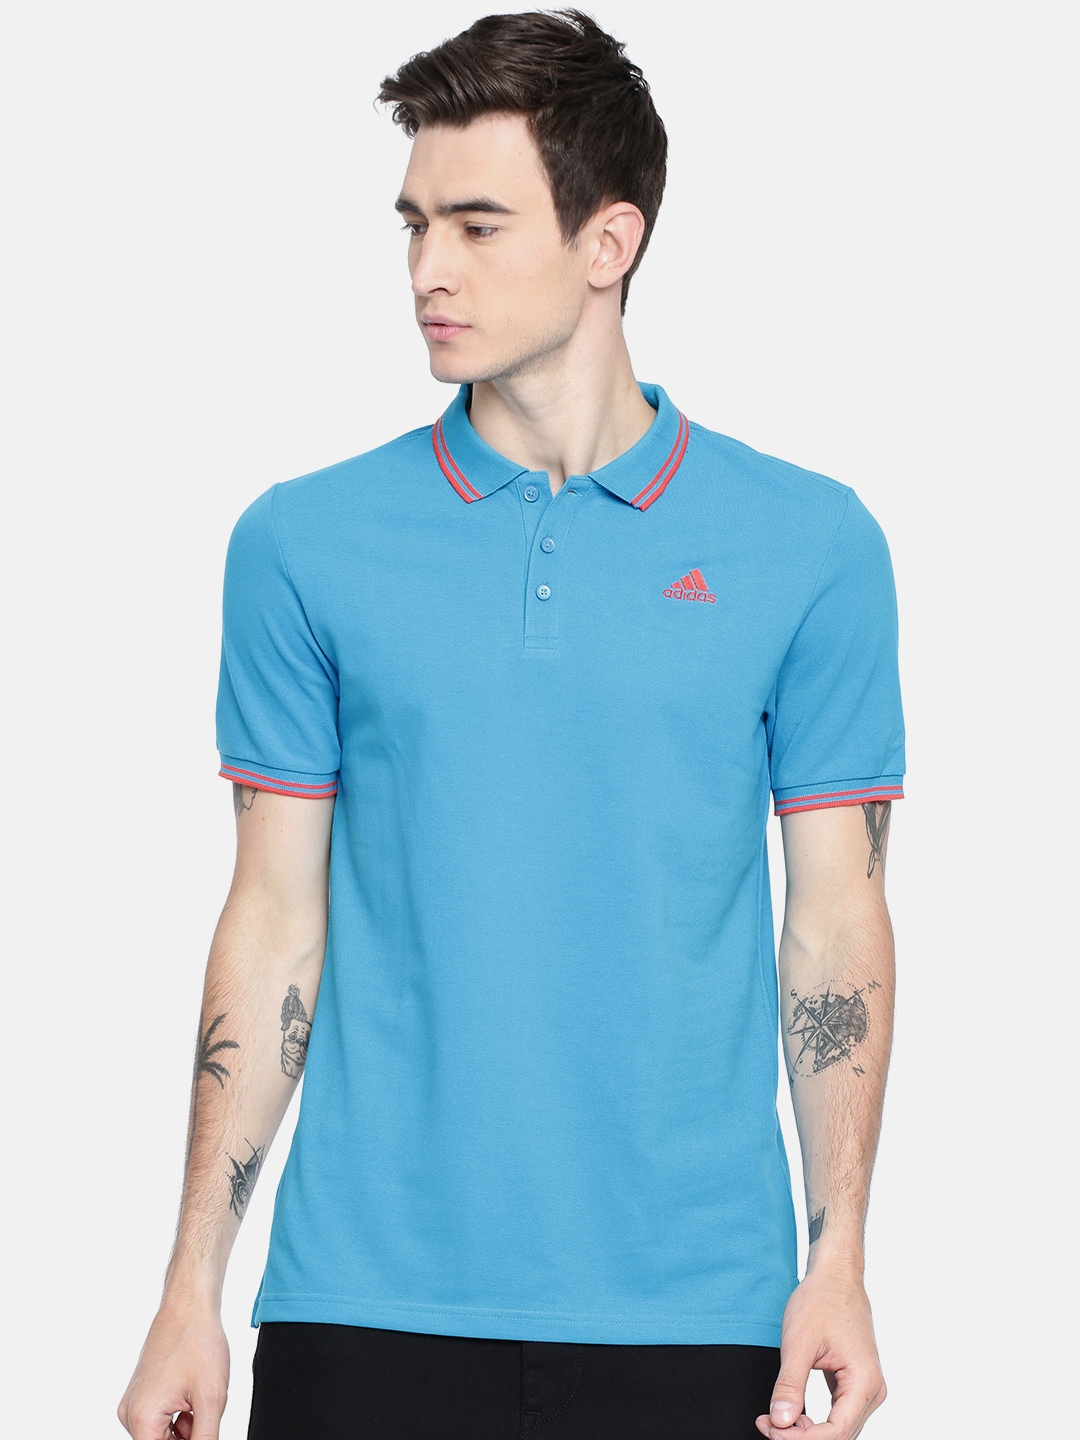 new concept 6bc53 52586 Source · Adidas T Shirts Buy Adidas Tshirts Online in India Myntra